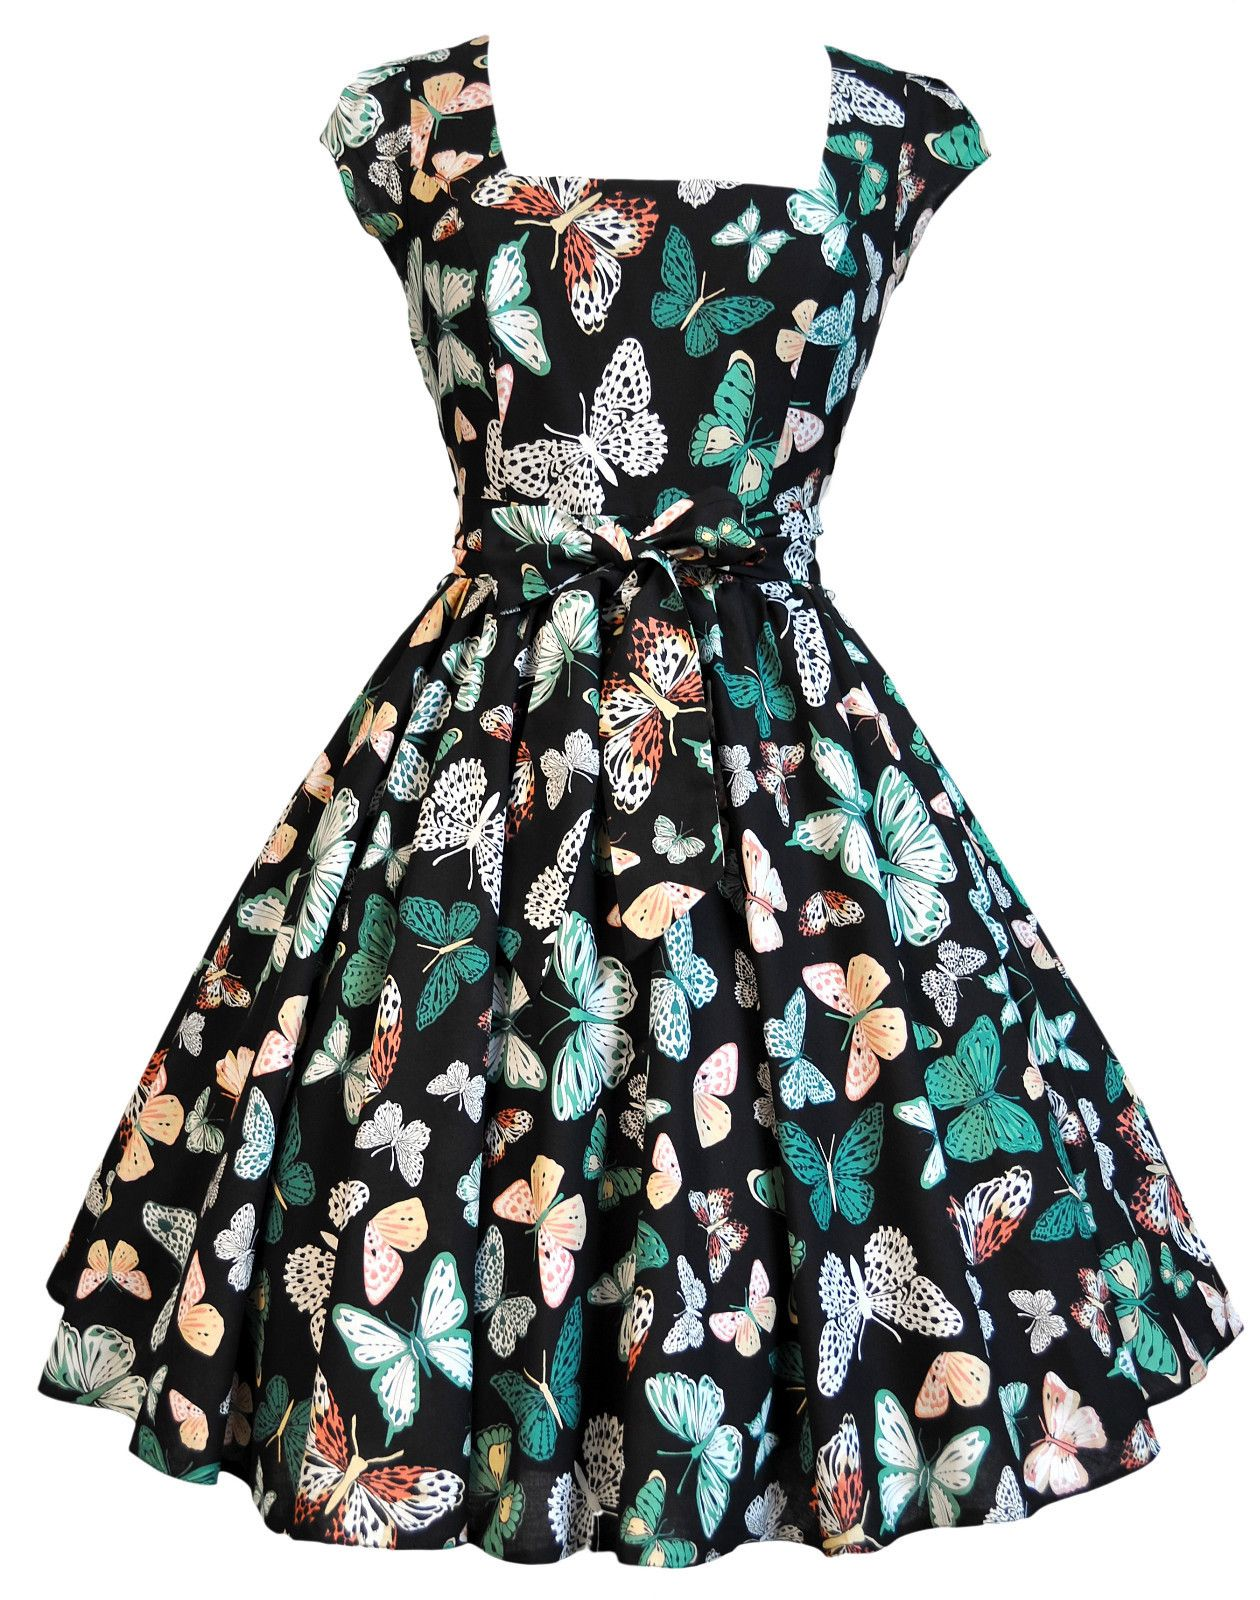 May 26th Suit Up Swing Style: Lady Vintage 50s Retro Cute Black Butterfly Swing